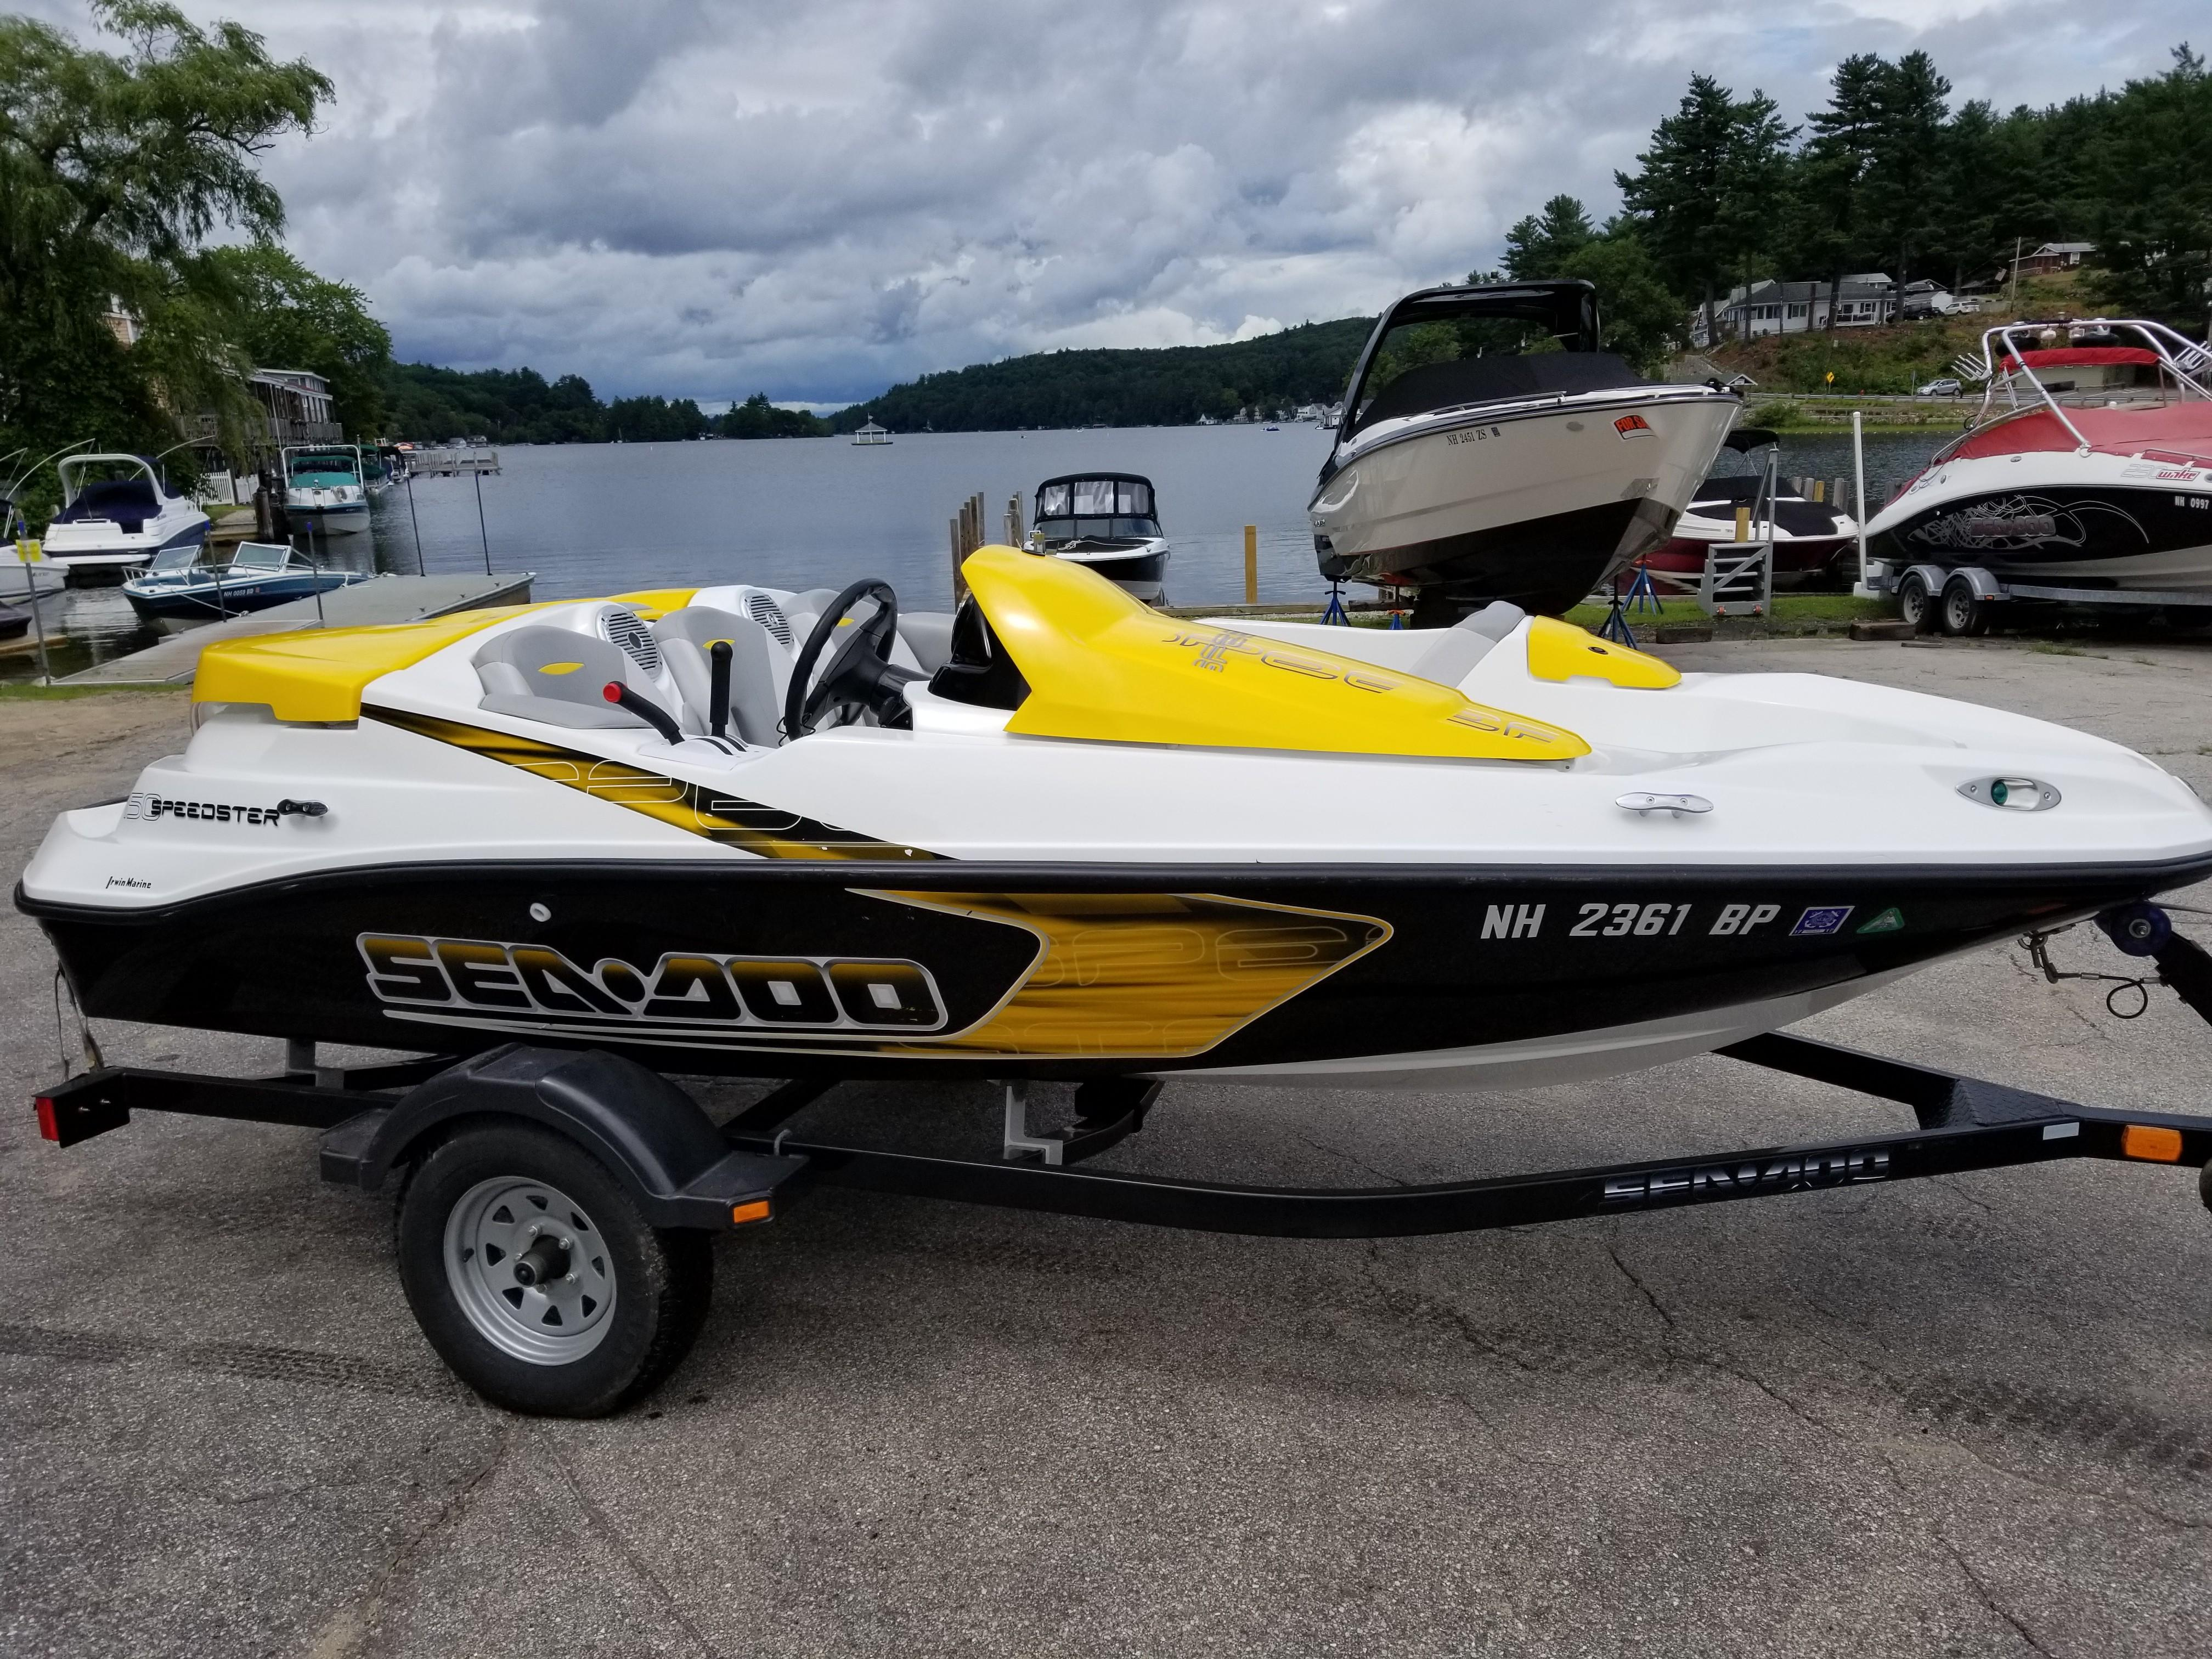 2009 Sea Doo Sportboat boat for sale, model of the boat is 150 Speedster & Image # 13 of 16